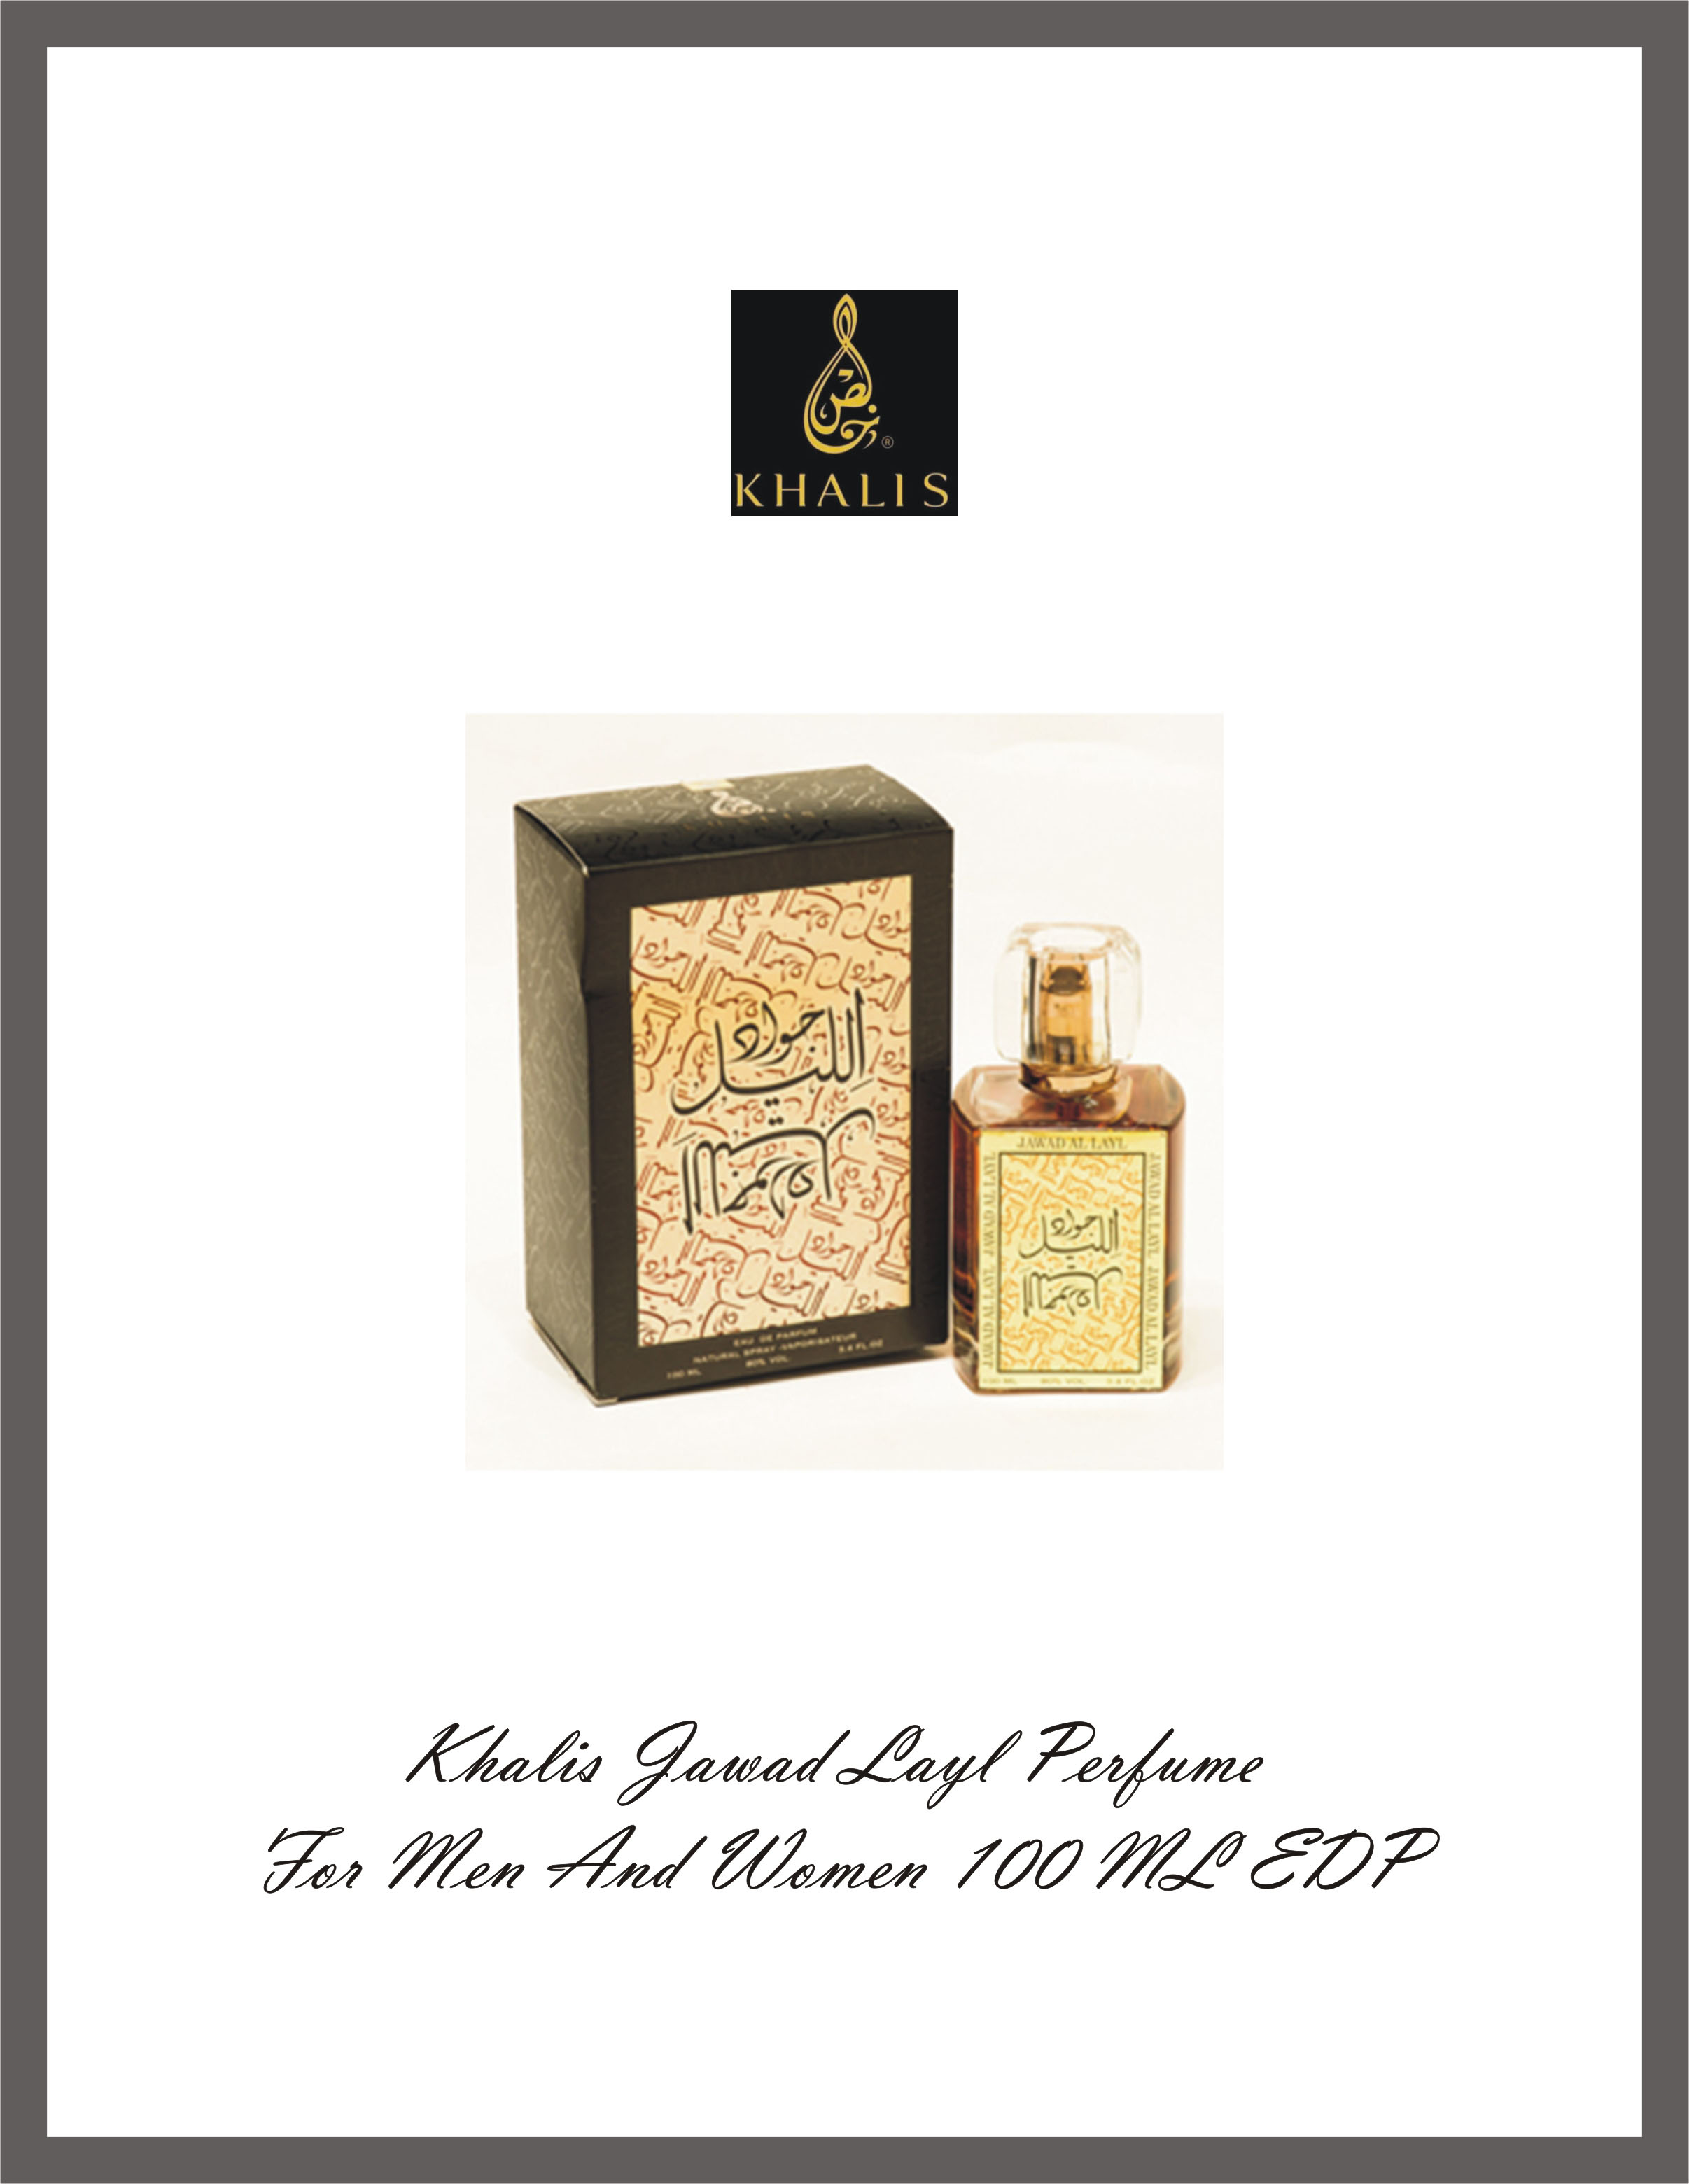 khalis-jawad-layl-perfume-for-men-and-women-100-ml-edp